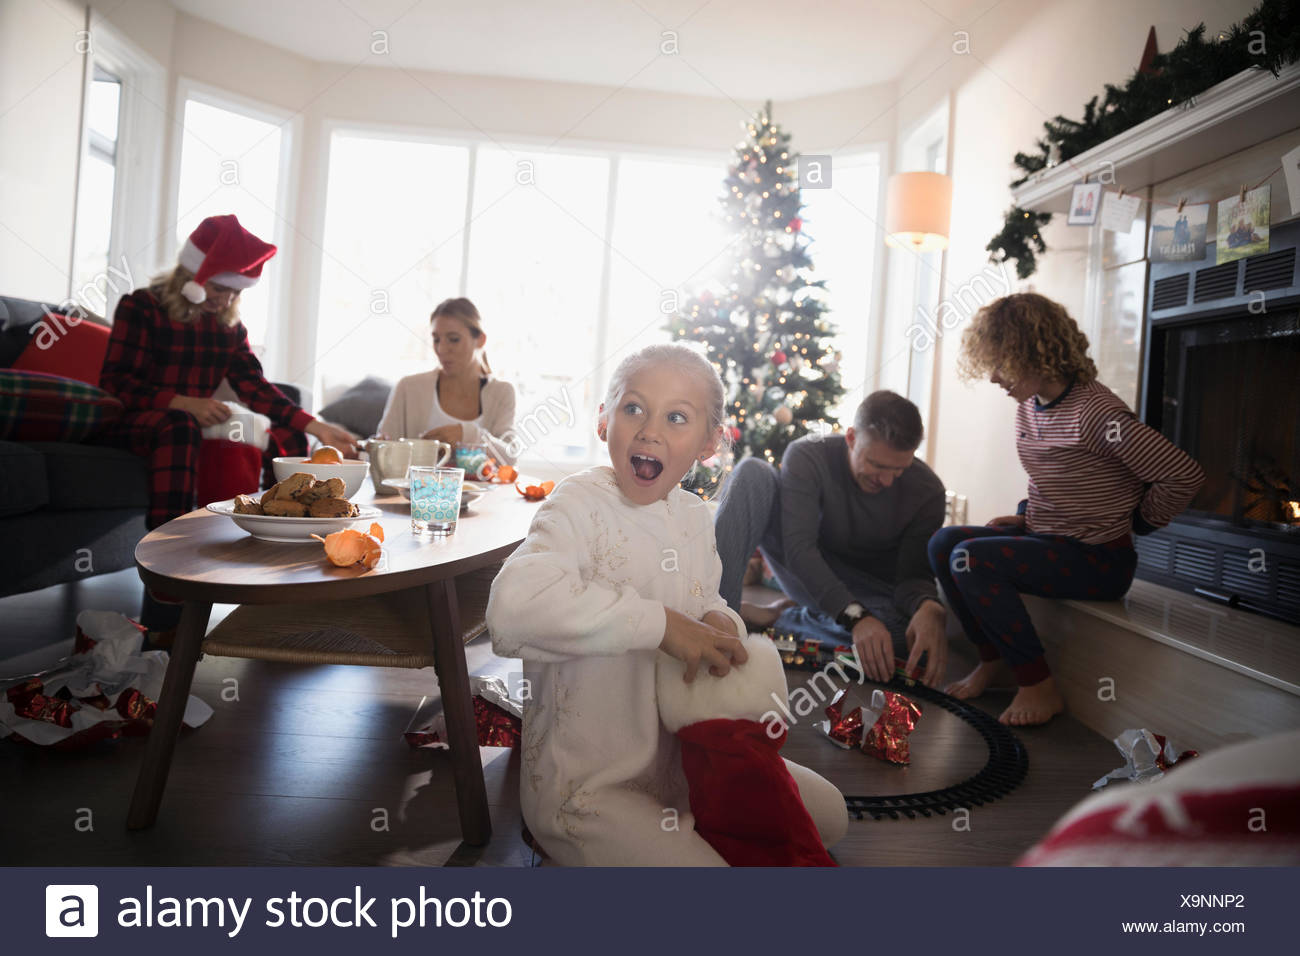 Surprised girl in pajamas opening Christmas stocking with family in living room - Stock Image